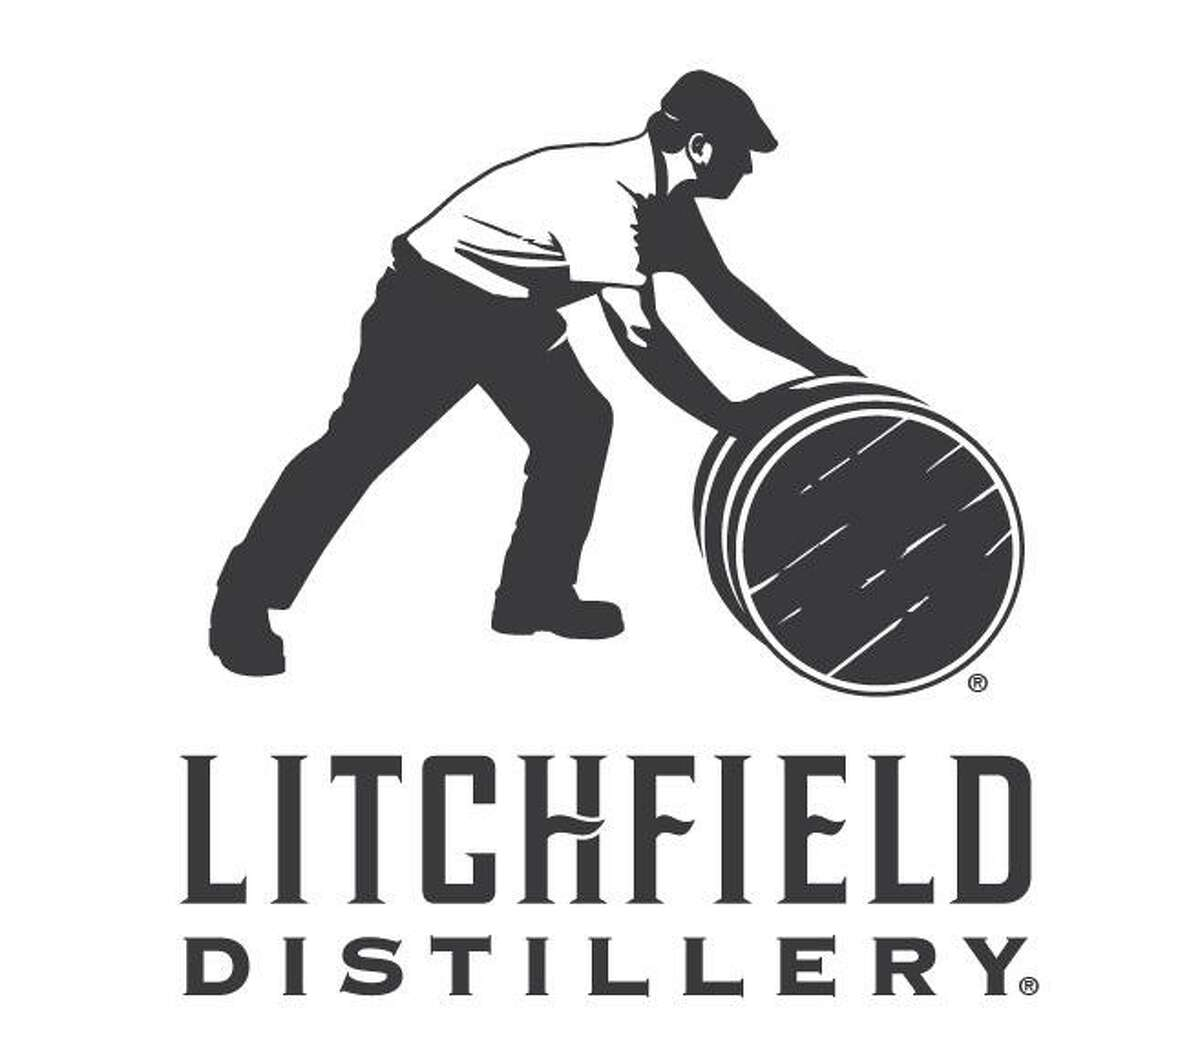 The Litchfield Distillery is among the recipients of an annual award from the Waterbury Chamber.